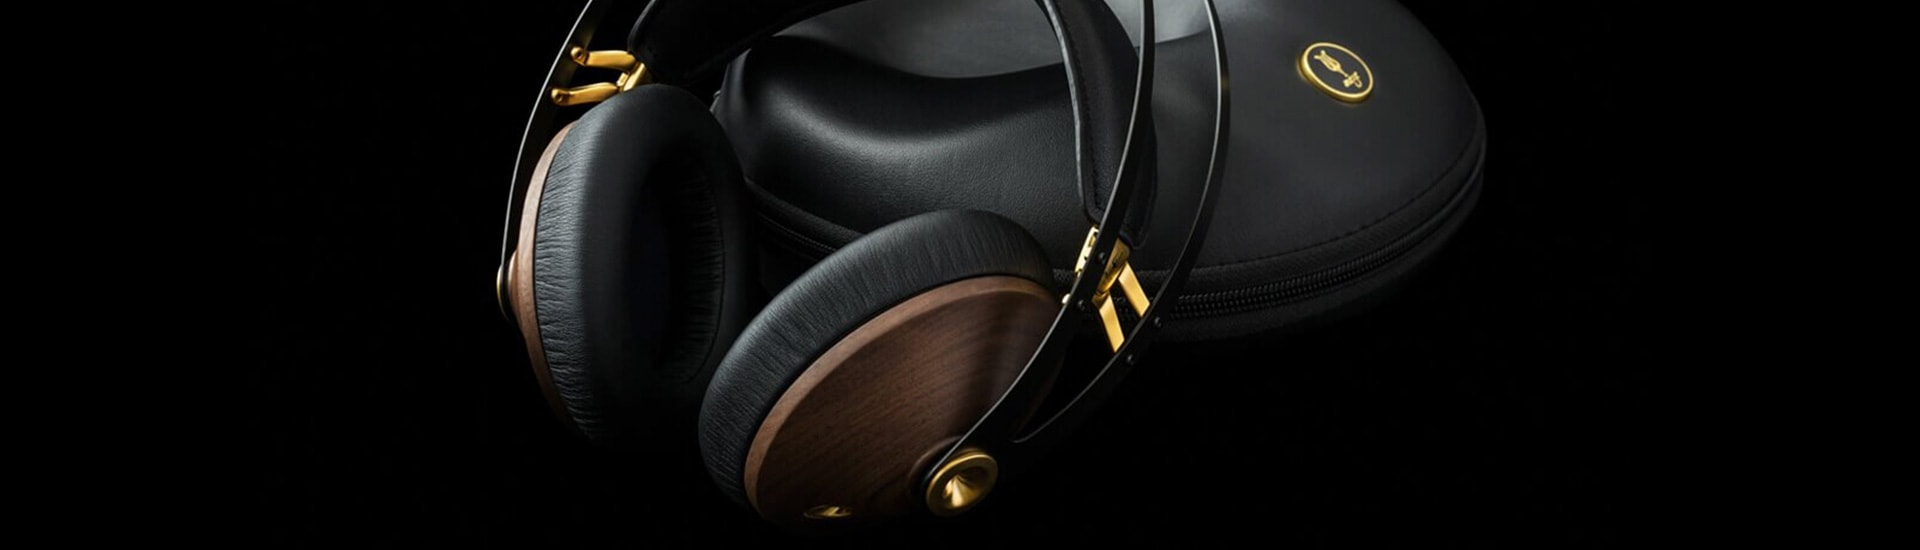 Review: Meze Audio 99 Classics vs. 99 Neo Headphones